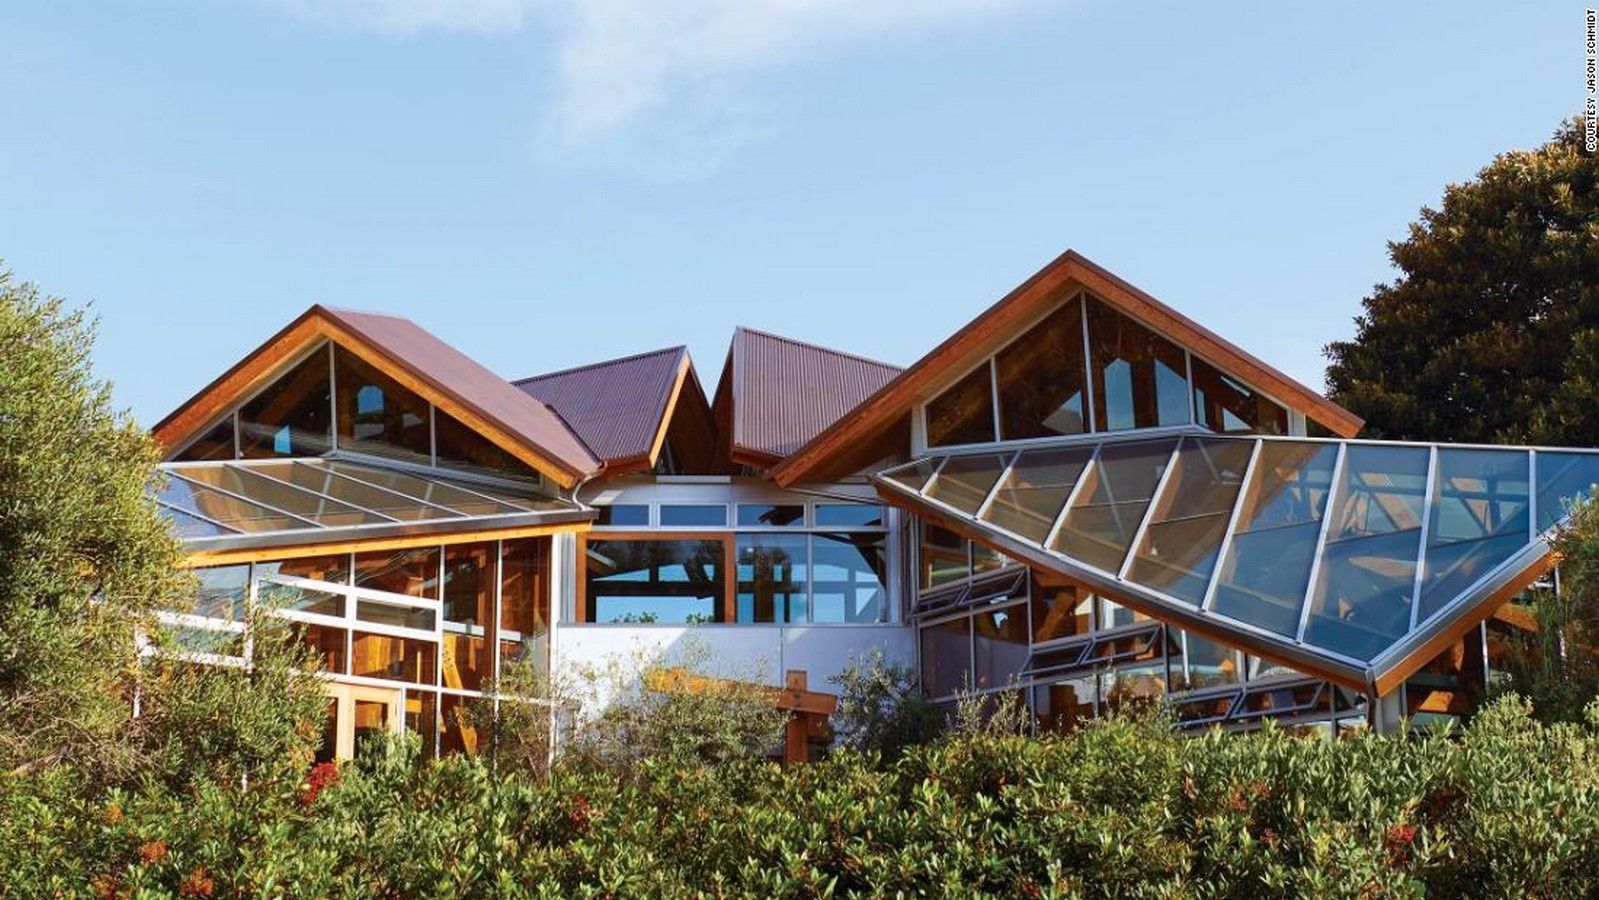 Gehry Residence by Frank Gehry: Balance between old and new - Sheet1